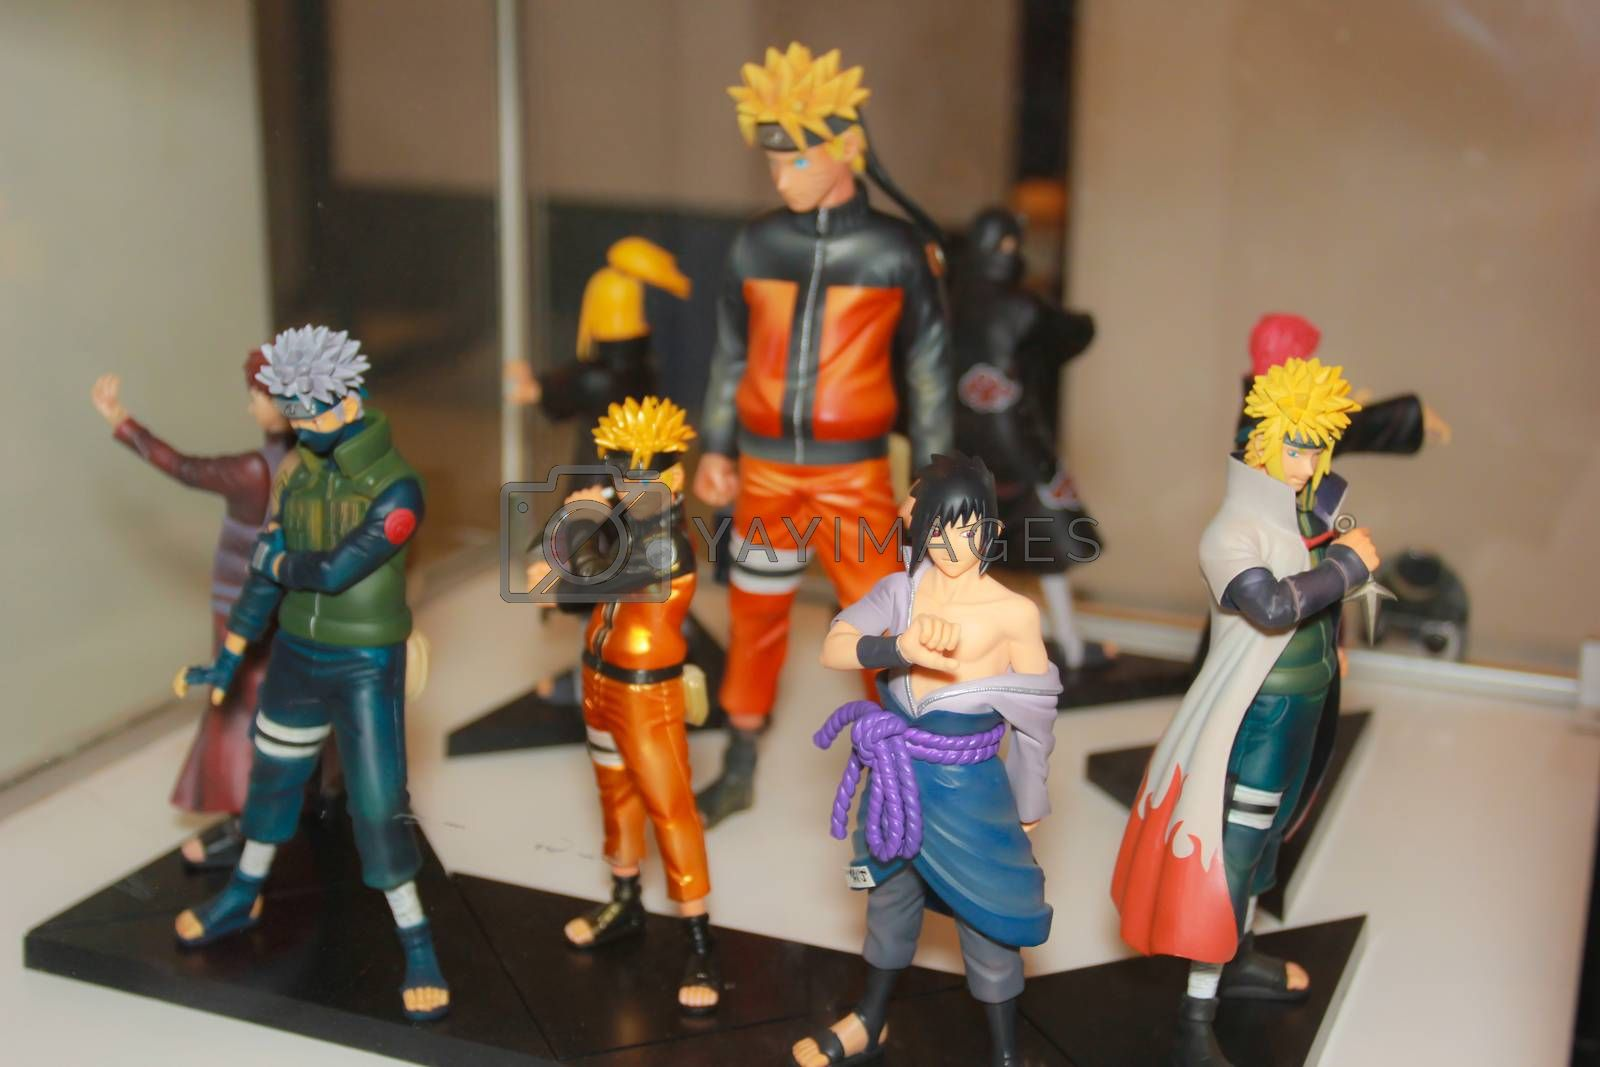 Royalty free image of A model of the character Naruto from the movies and comics 2 by redthirteen